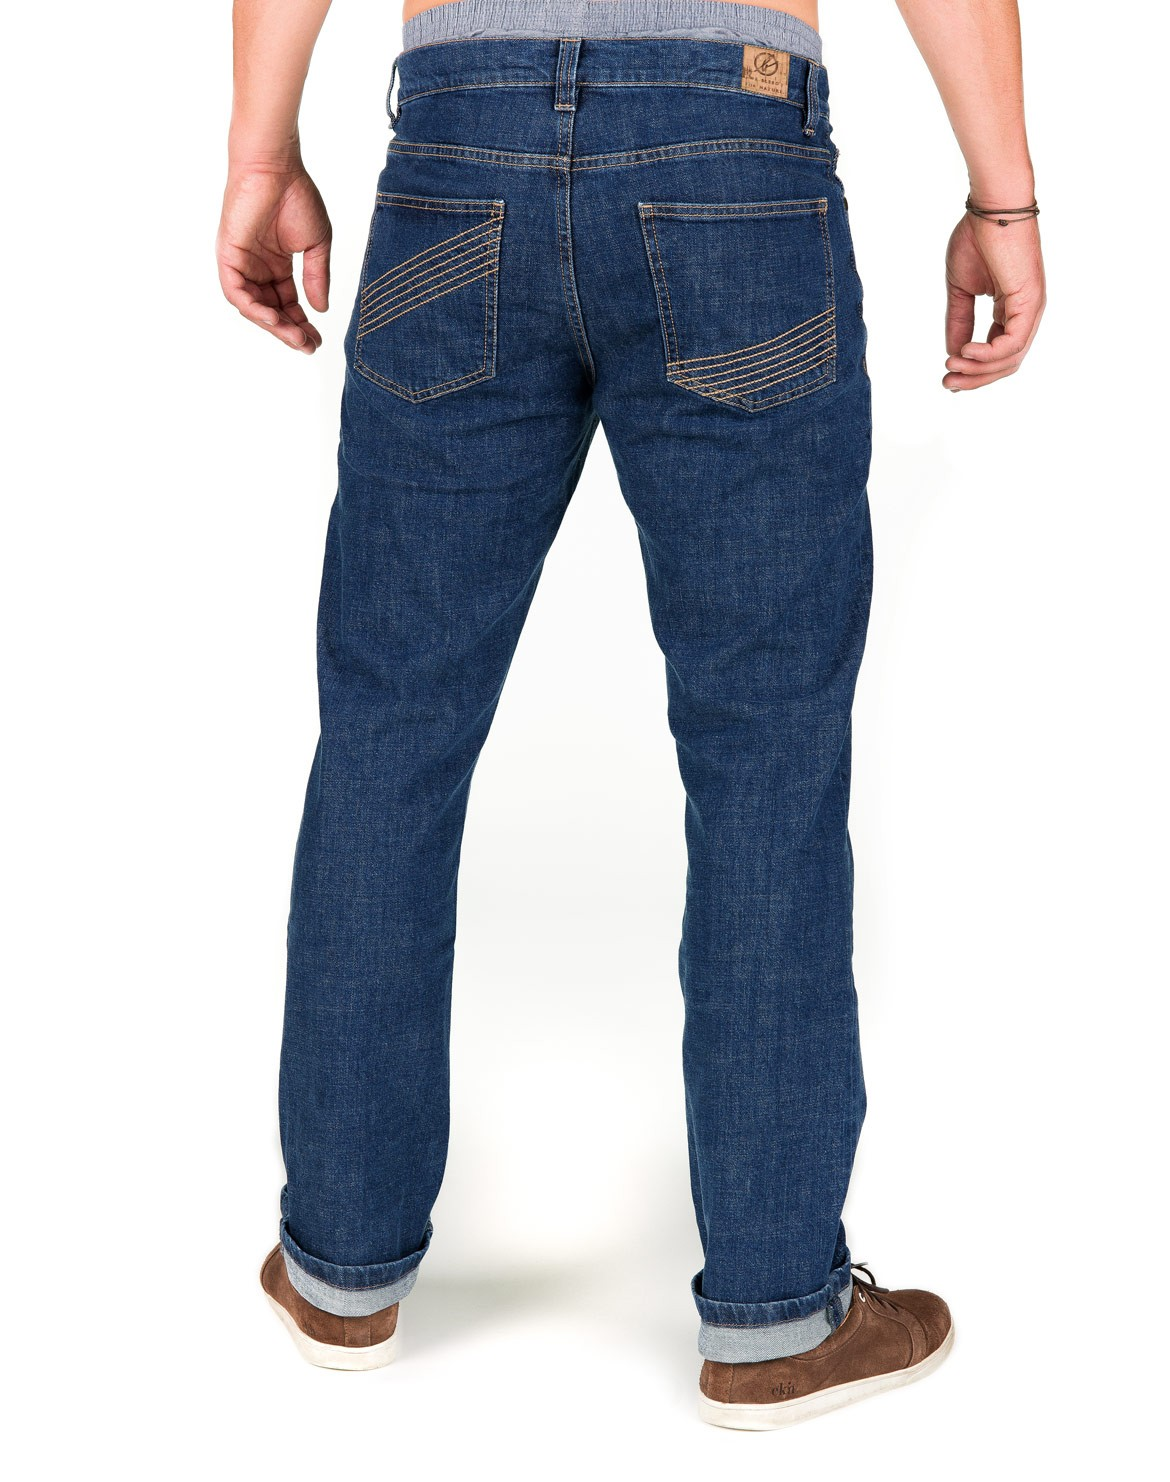 Functional Jeans